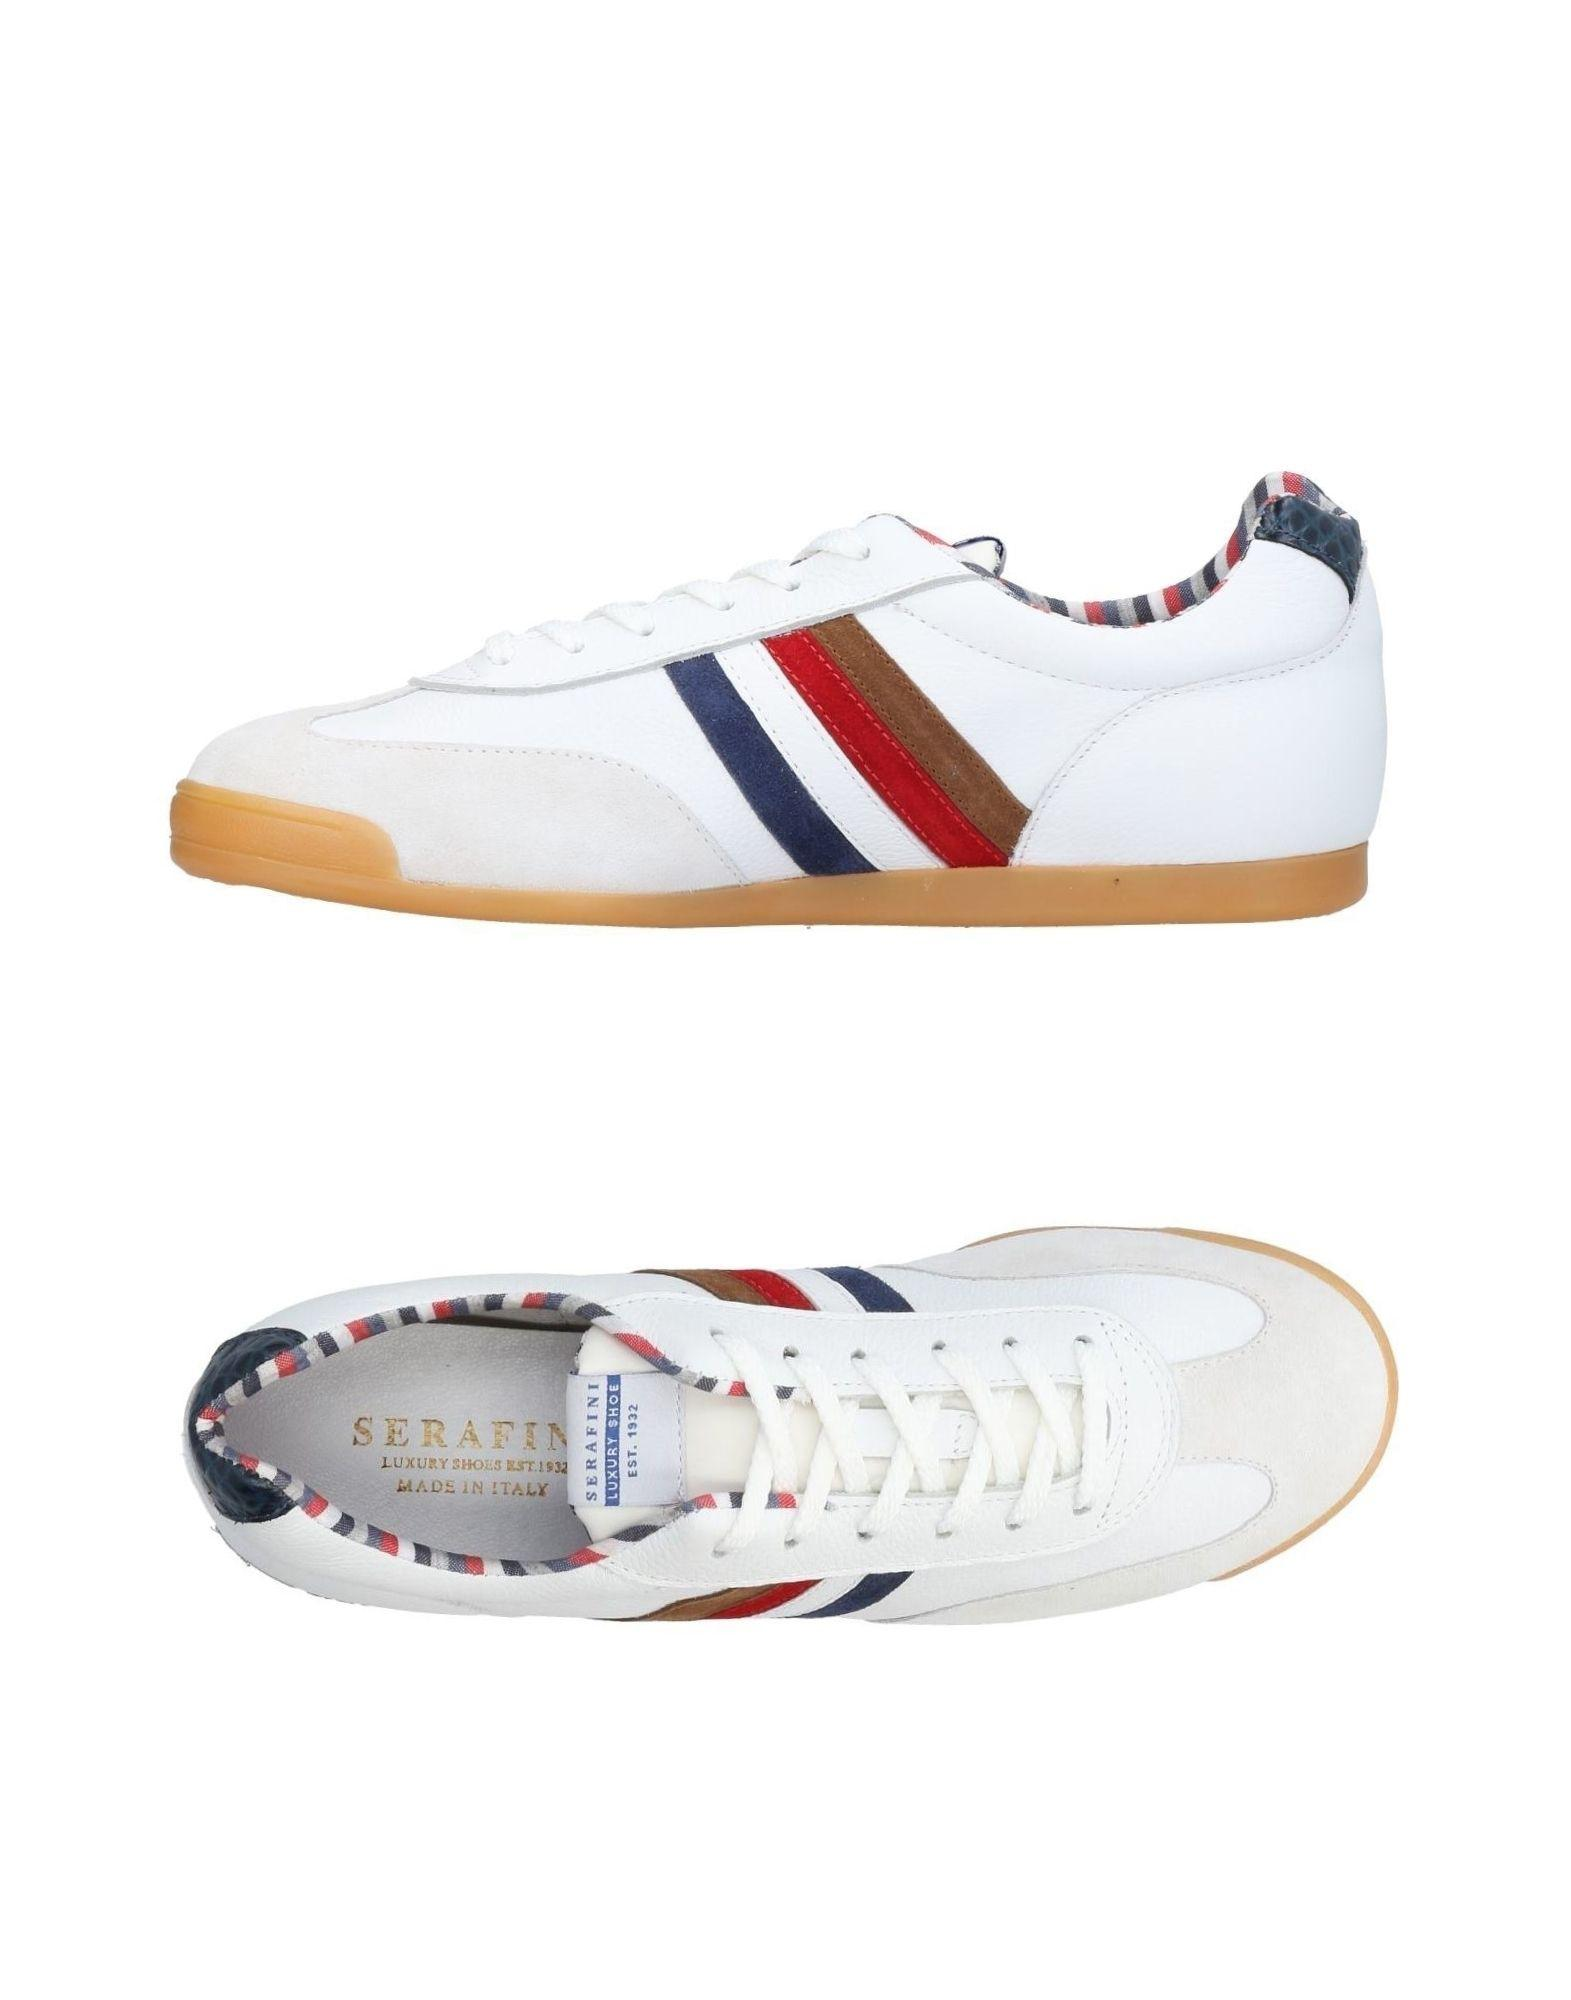 FOOTWEAR - Low-tops & sneakers Serafini qWuH42c5